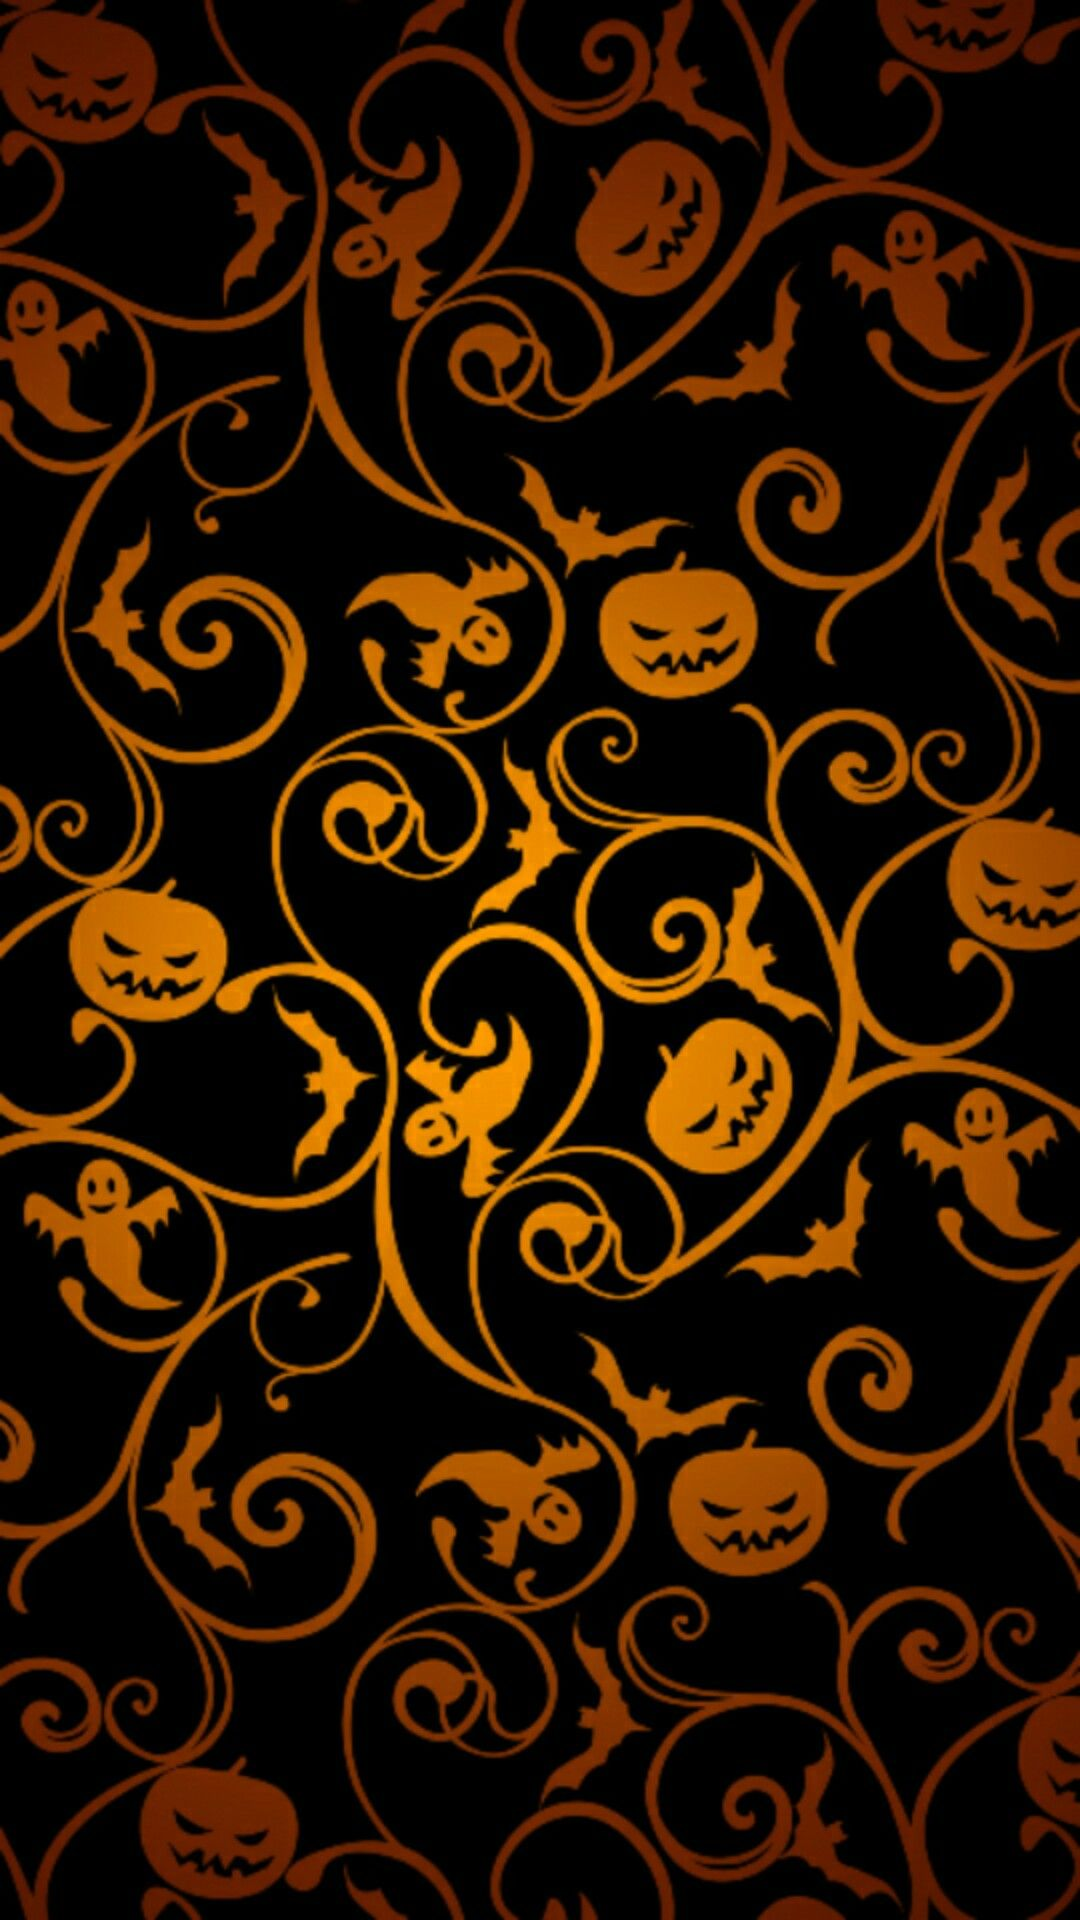 Halloween Pumpkin Vines Ghosts Bats Cellphone Wallpaper Locks Screen Halloween Wallpaper Iphone Halloween Wallpaper Pretty Wallpapers